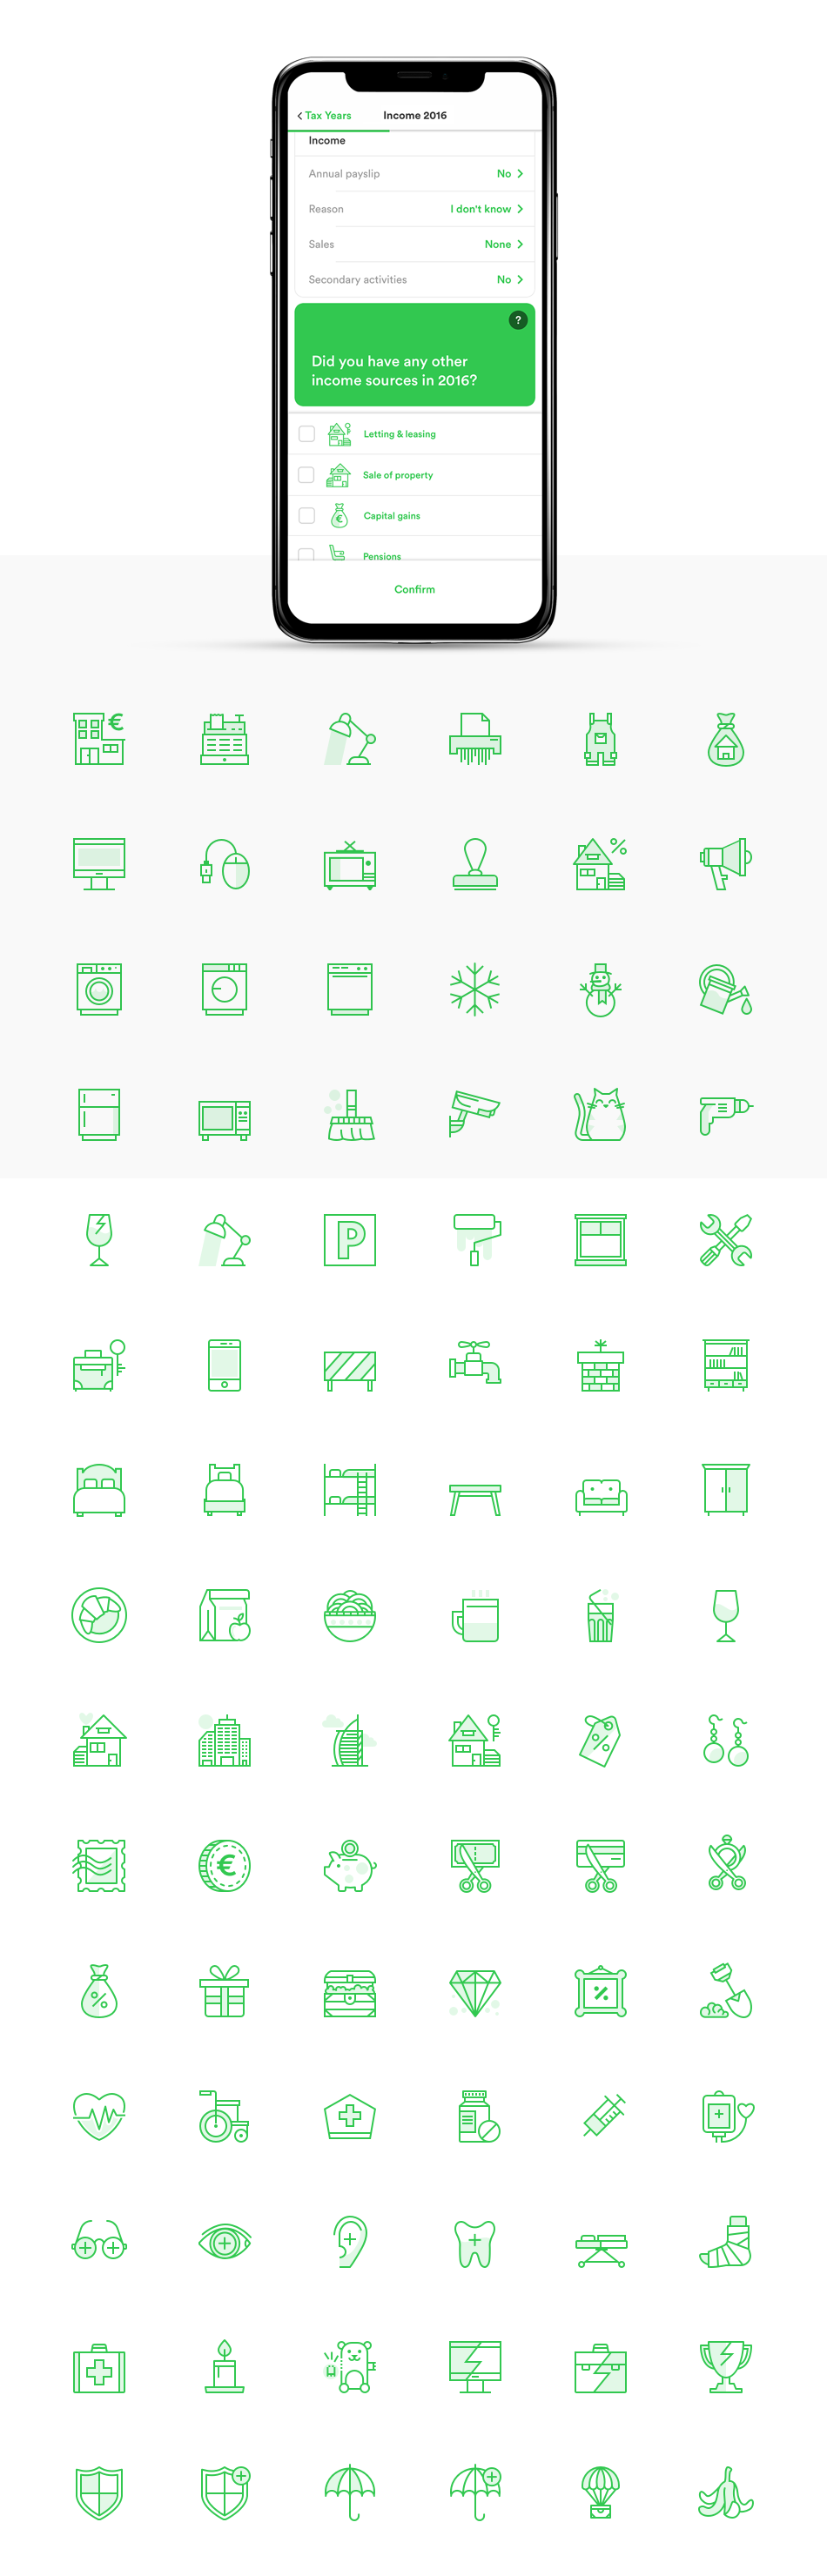 App Screen Mockup and pixel-perfect icons